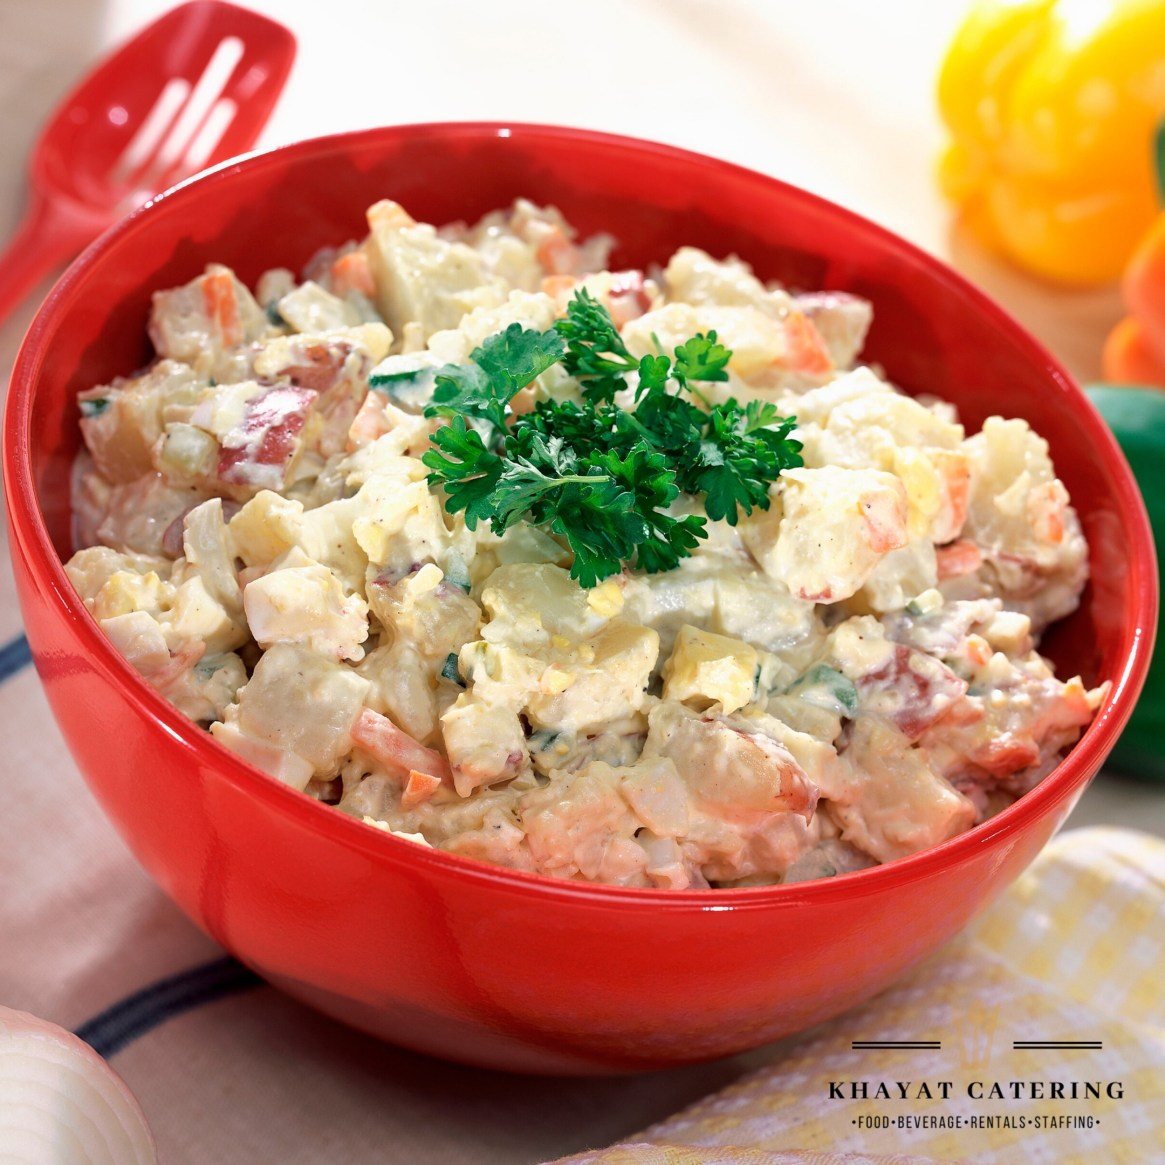 Khayat Catering potato salad